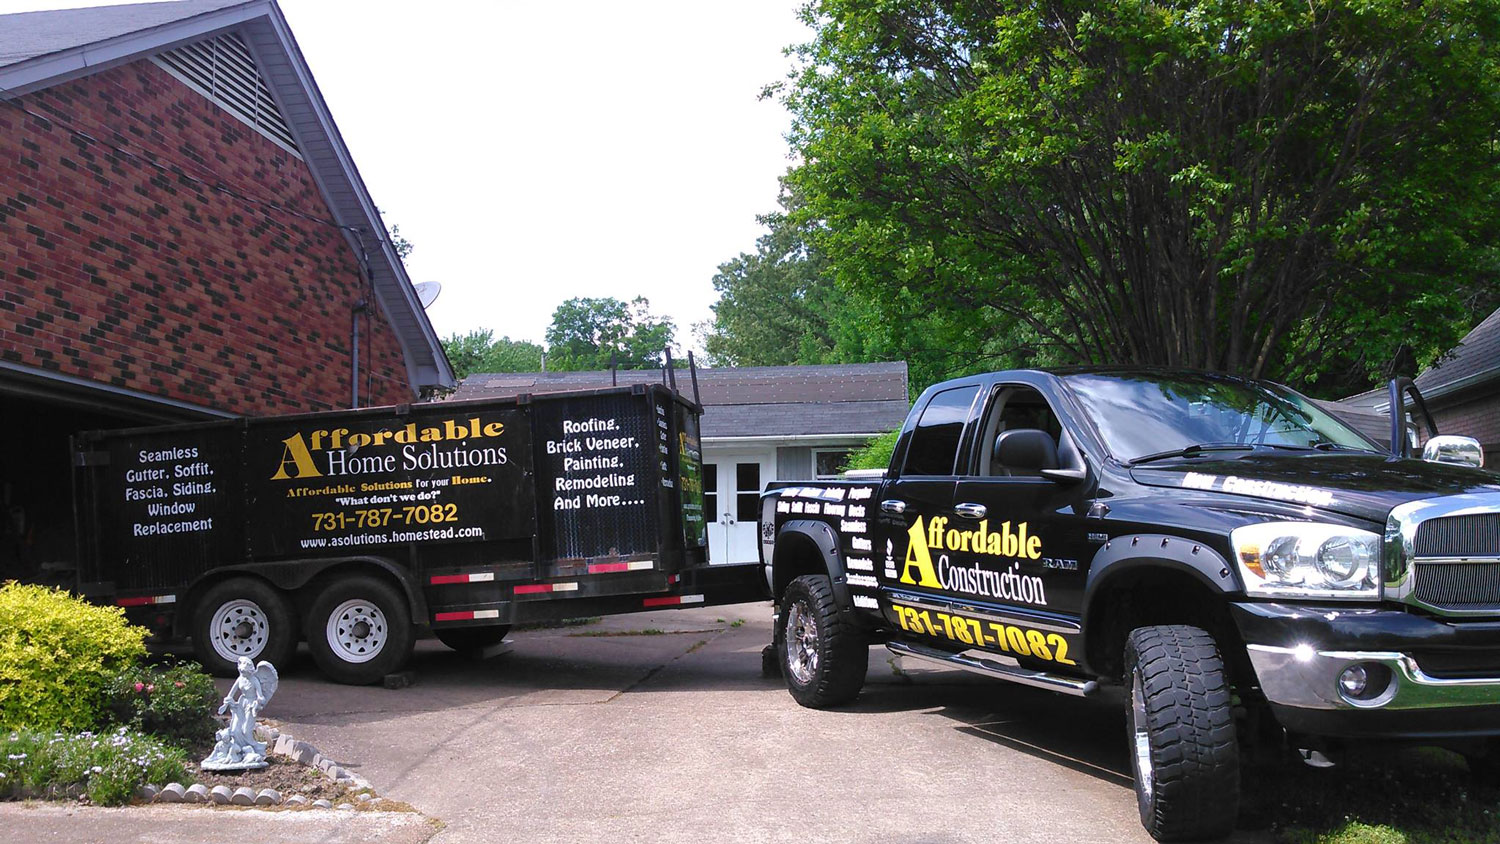 Affordable Construction with truck and trailer attached for slider